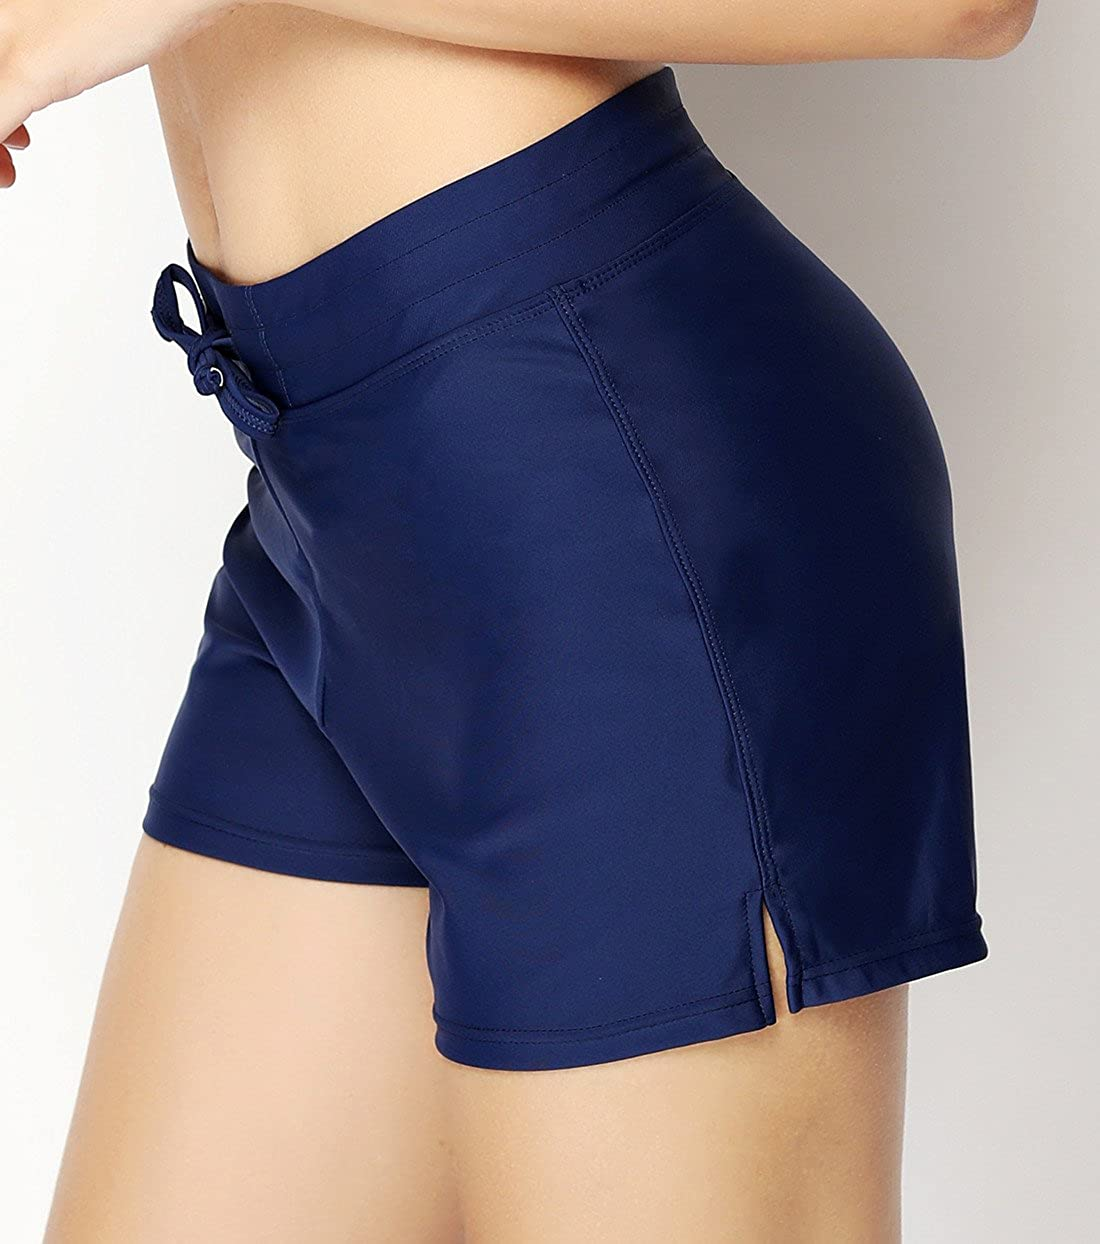 Comfort Quick Dry HOLYSNOW Womens Stretch Board Short Briefs Inner Lining